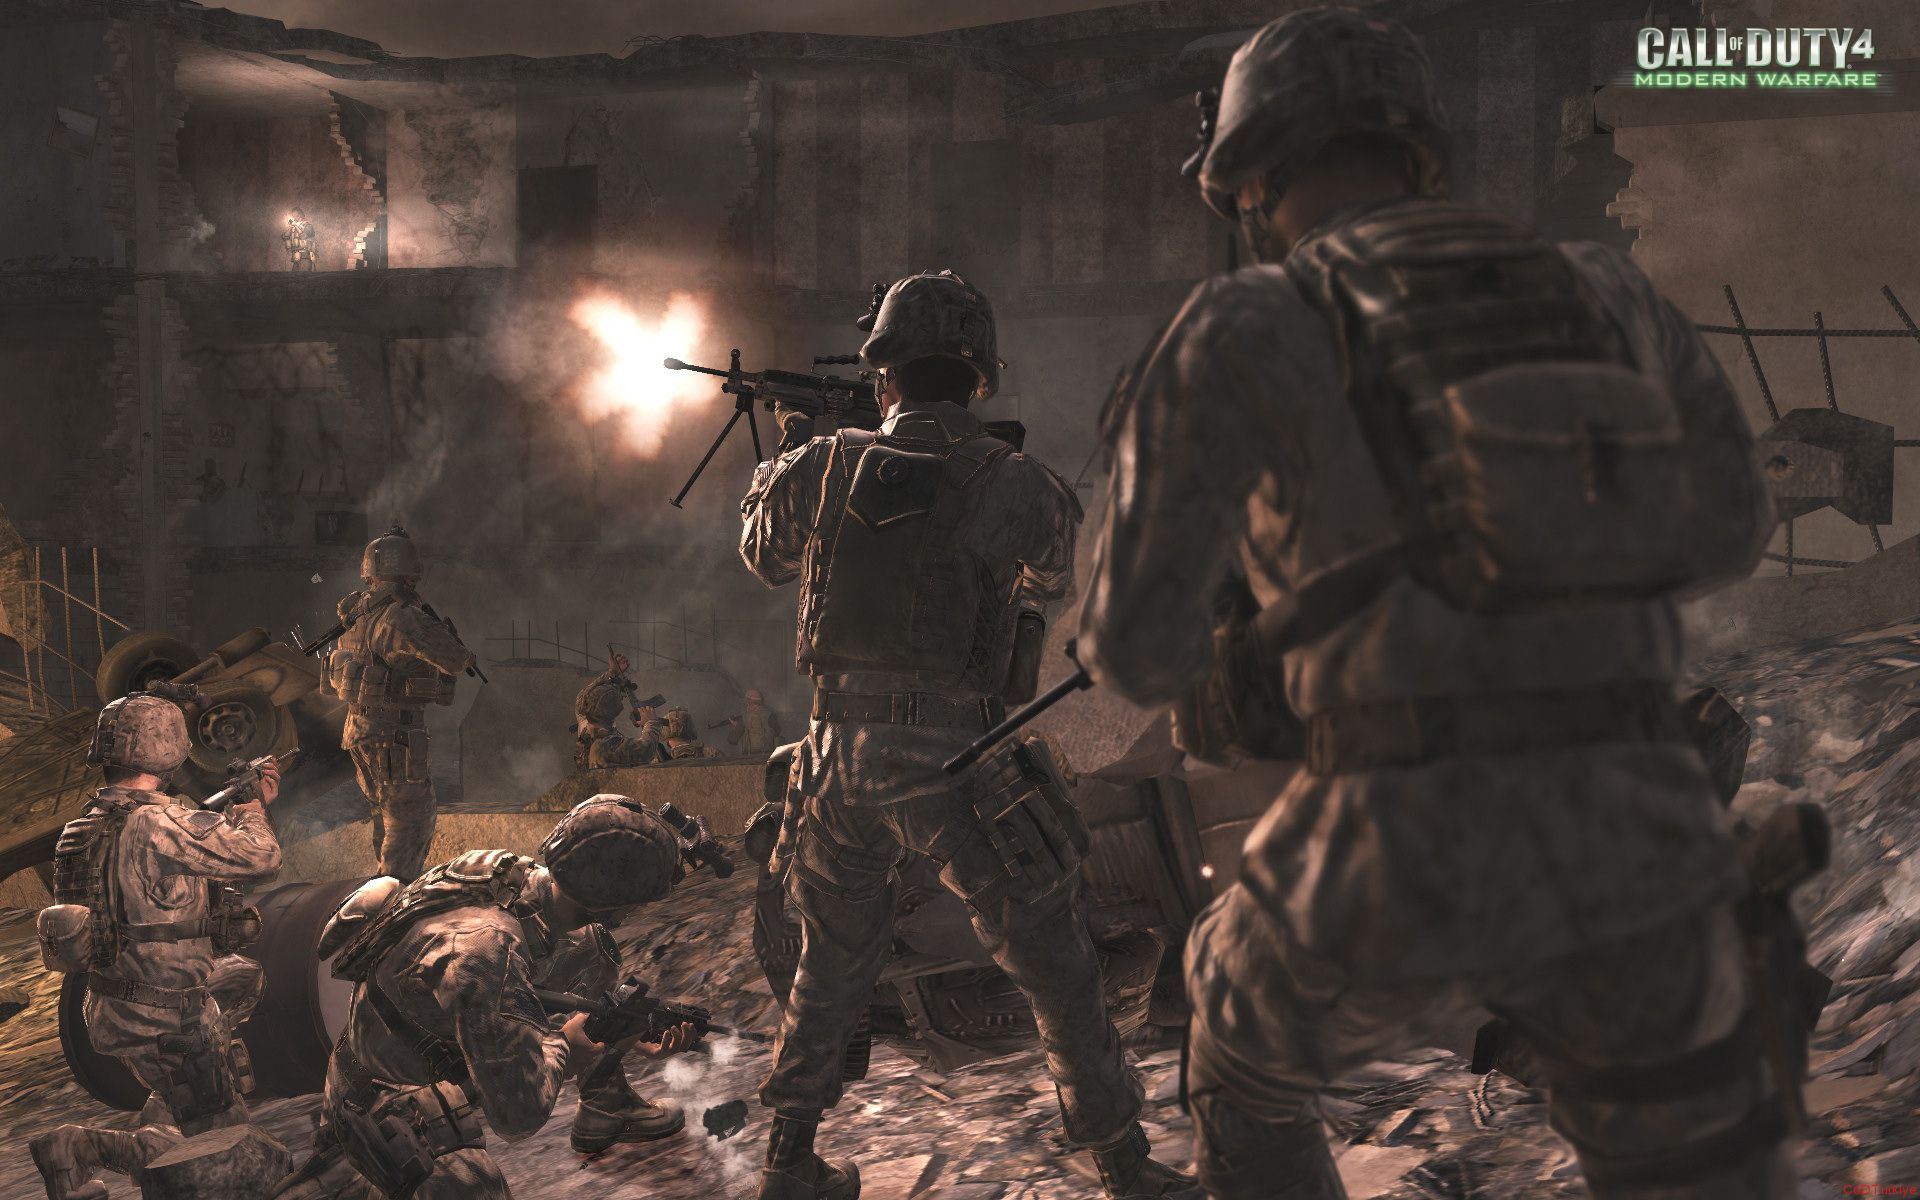 Call of Duty 4 HD Wallpapers